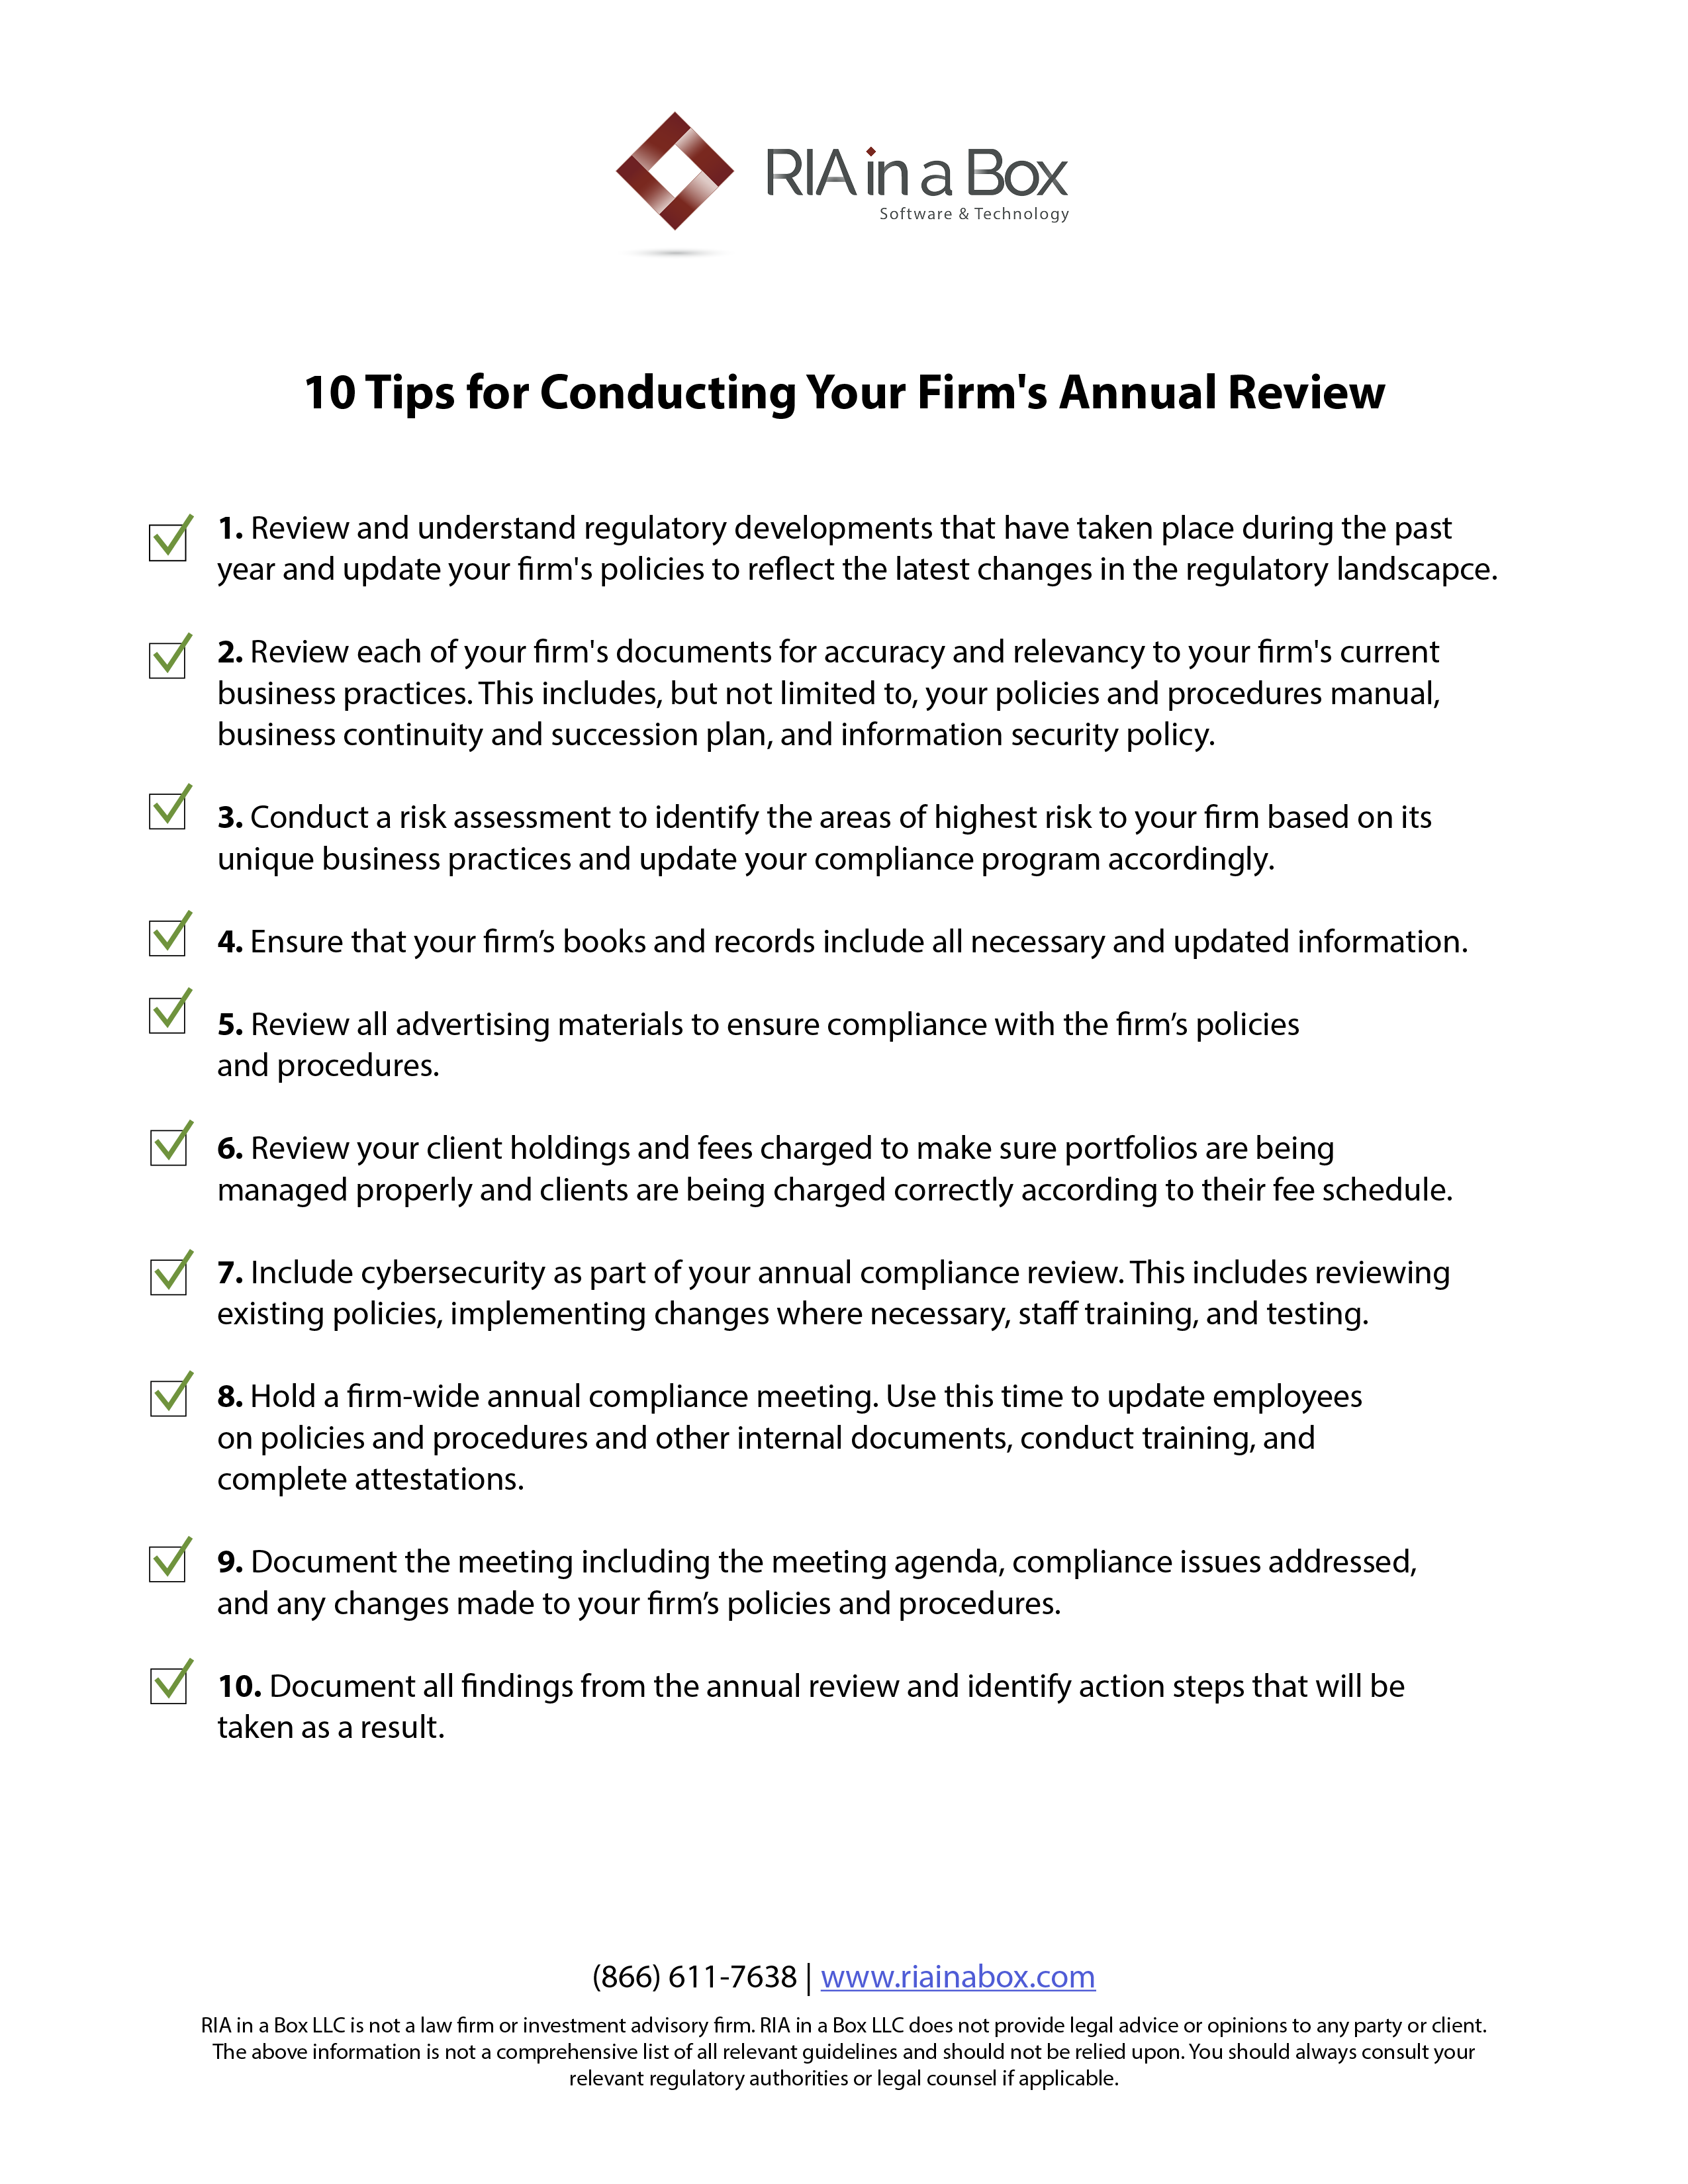 10 Tips for Conducting your Firms Annual Review-1